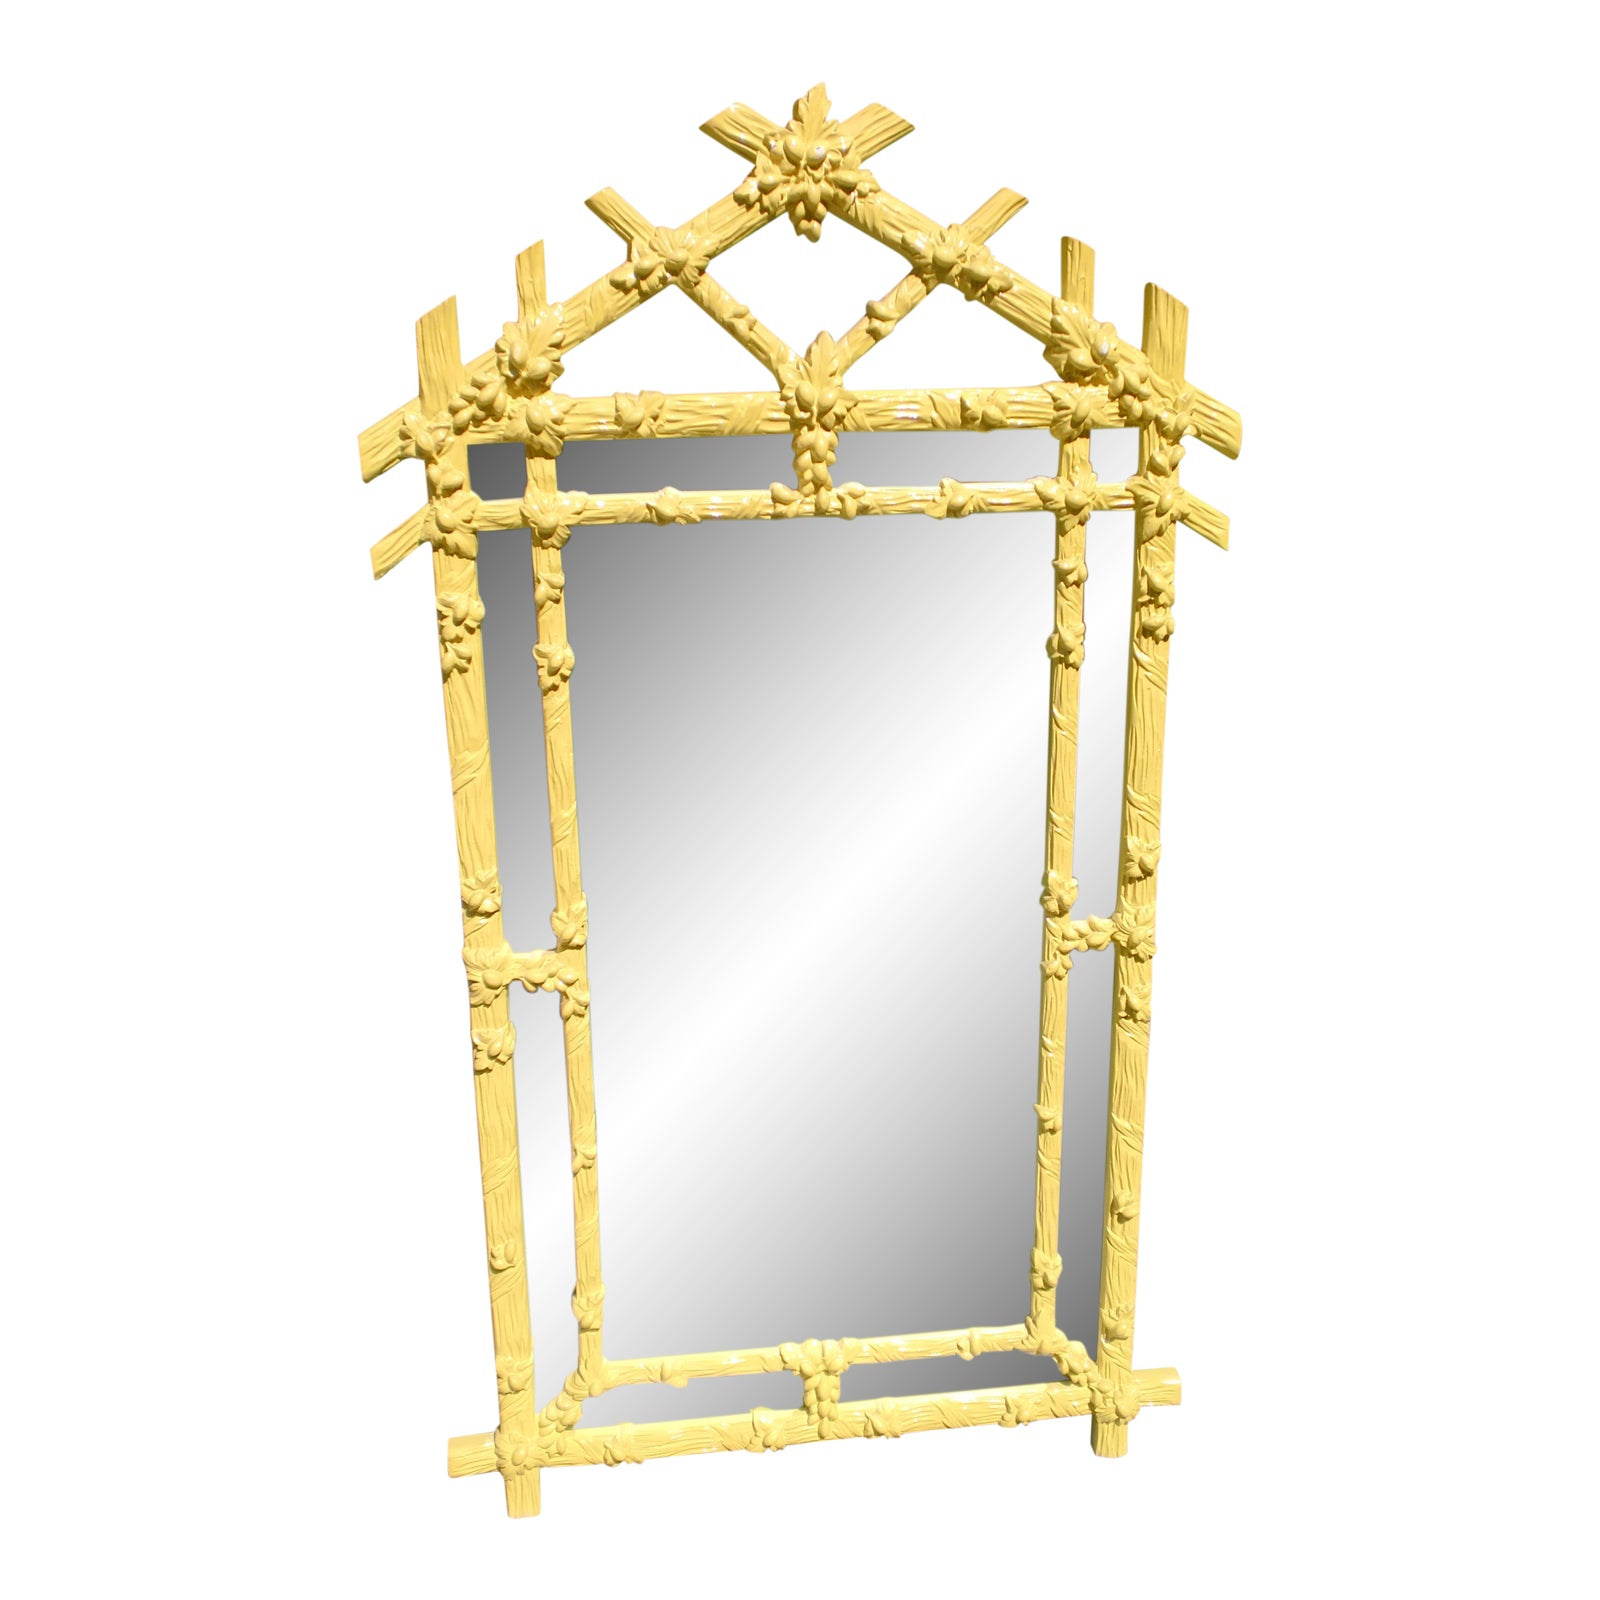 Gampel Stoll Yellow Faux Bois Wall Mirror | Chairish